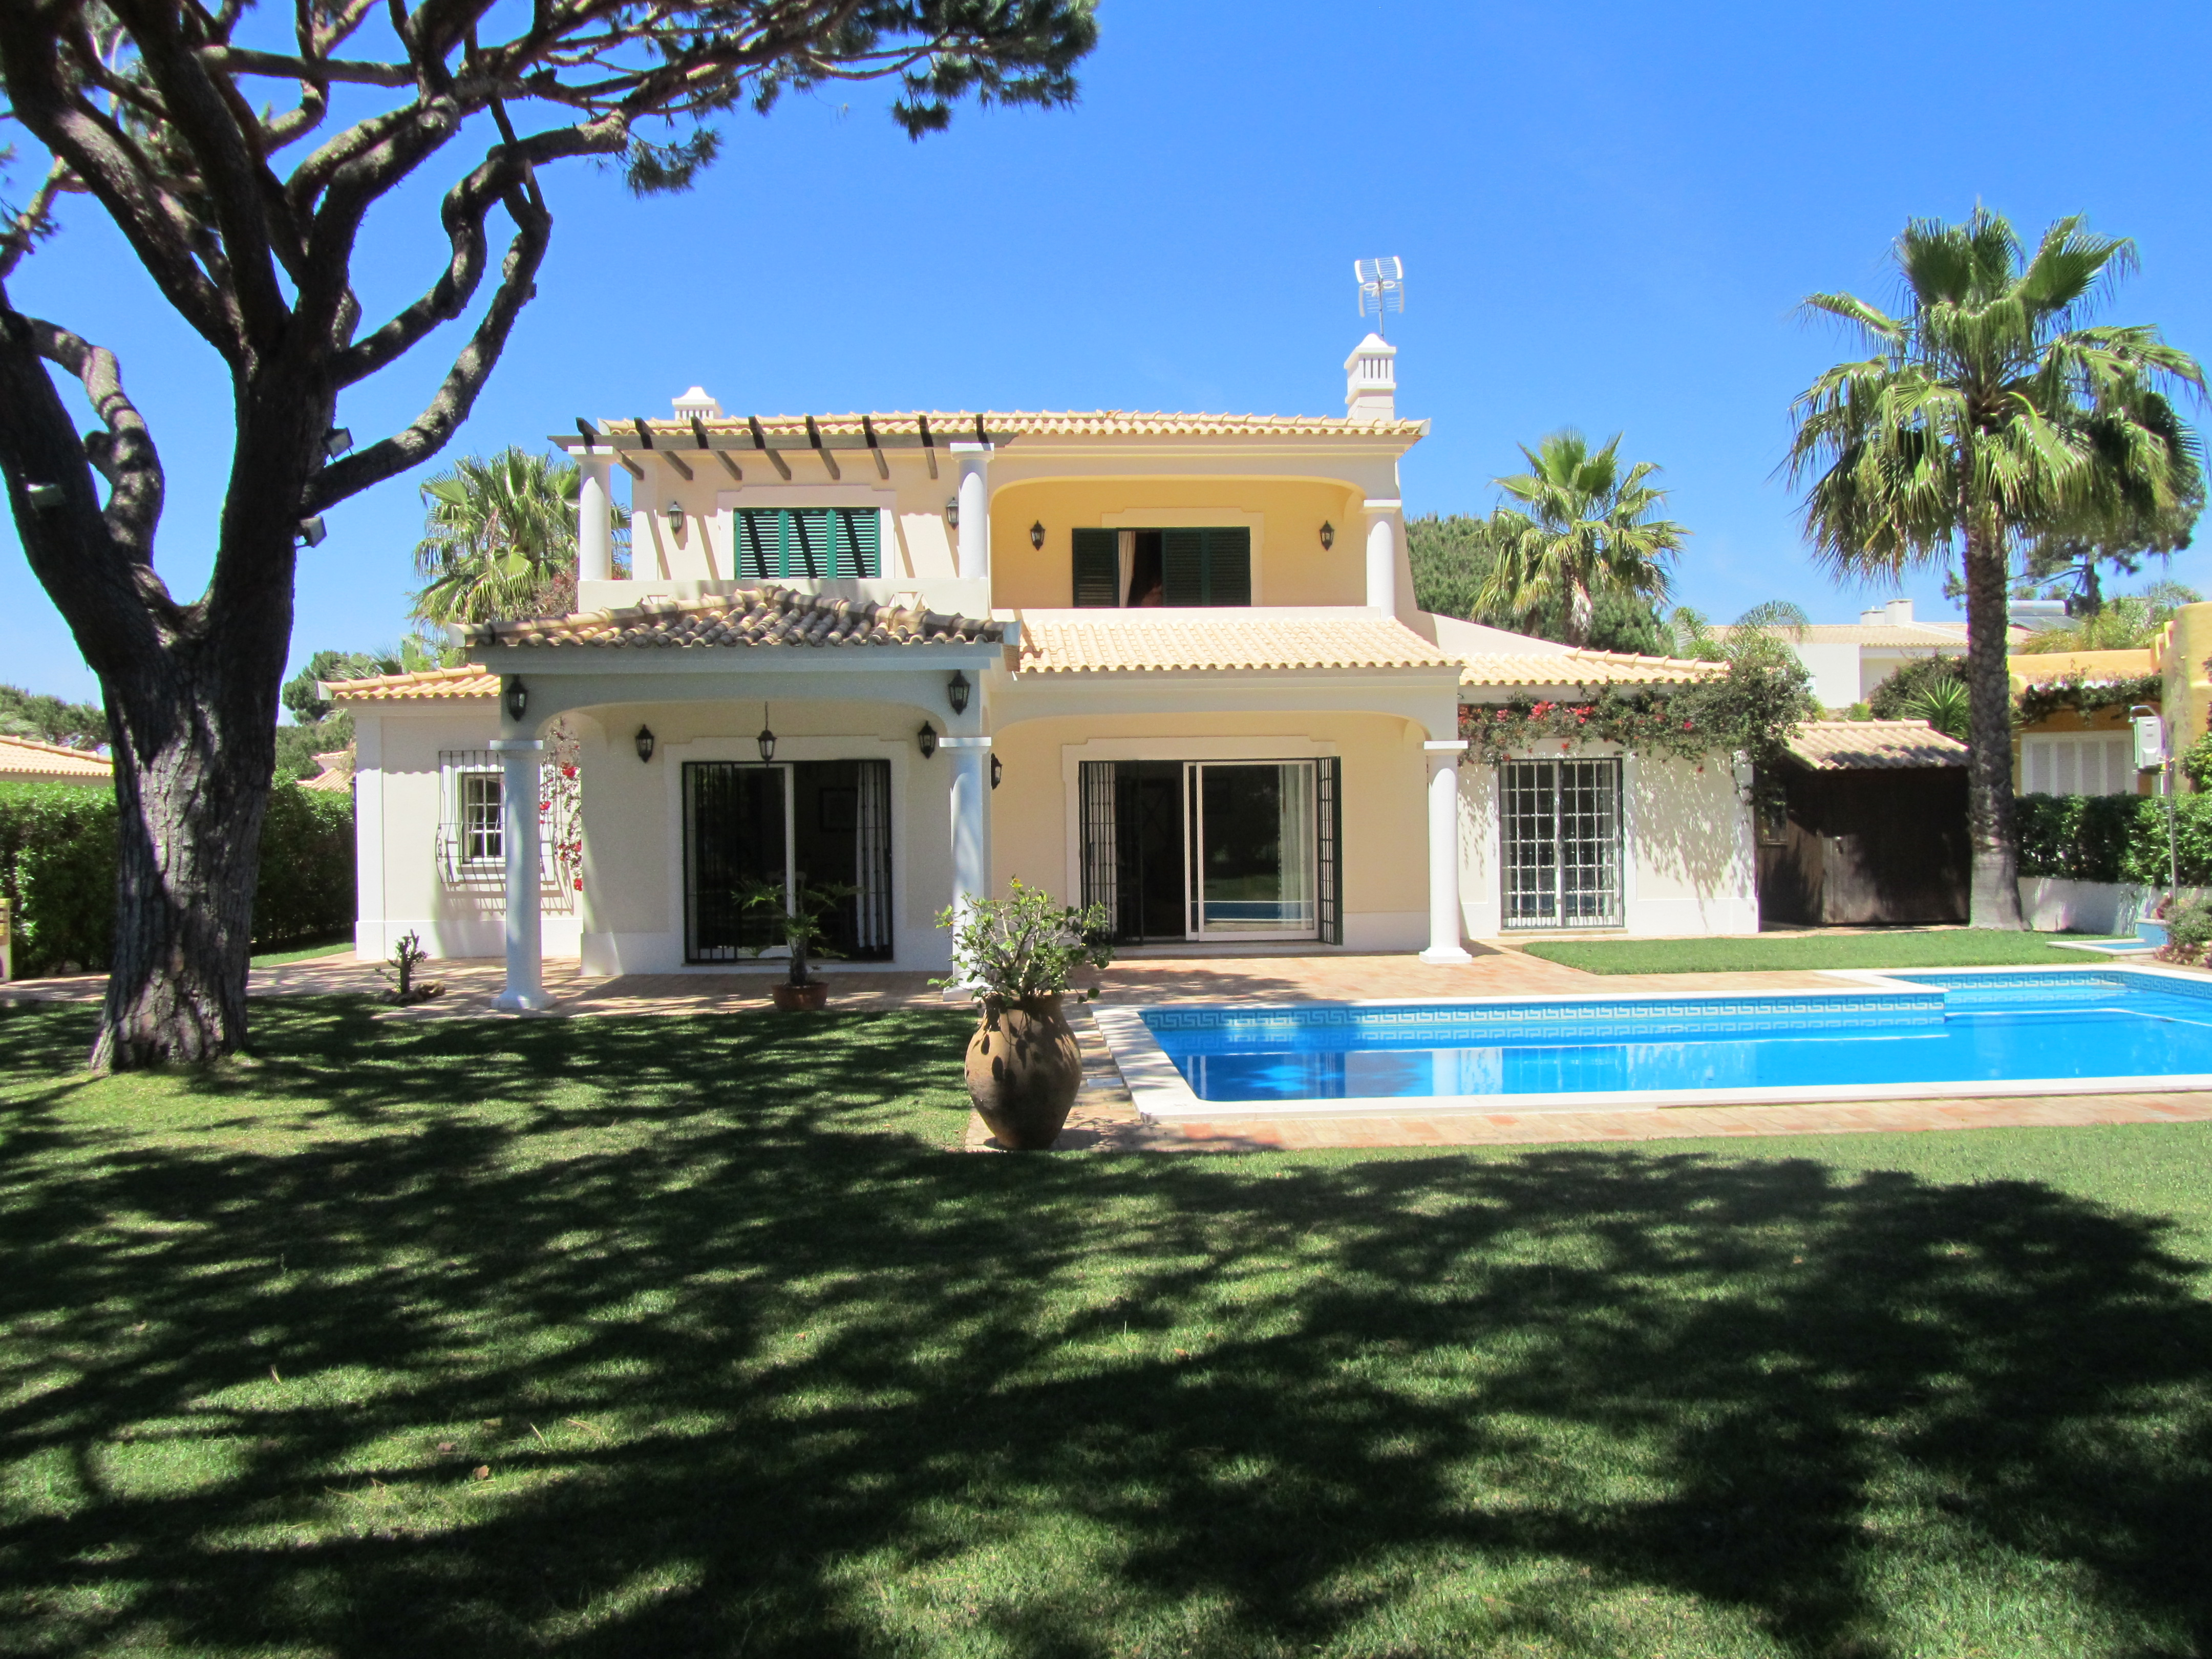 Countryside Beach Villa Portugal Luxury